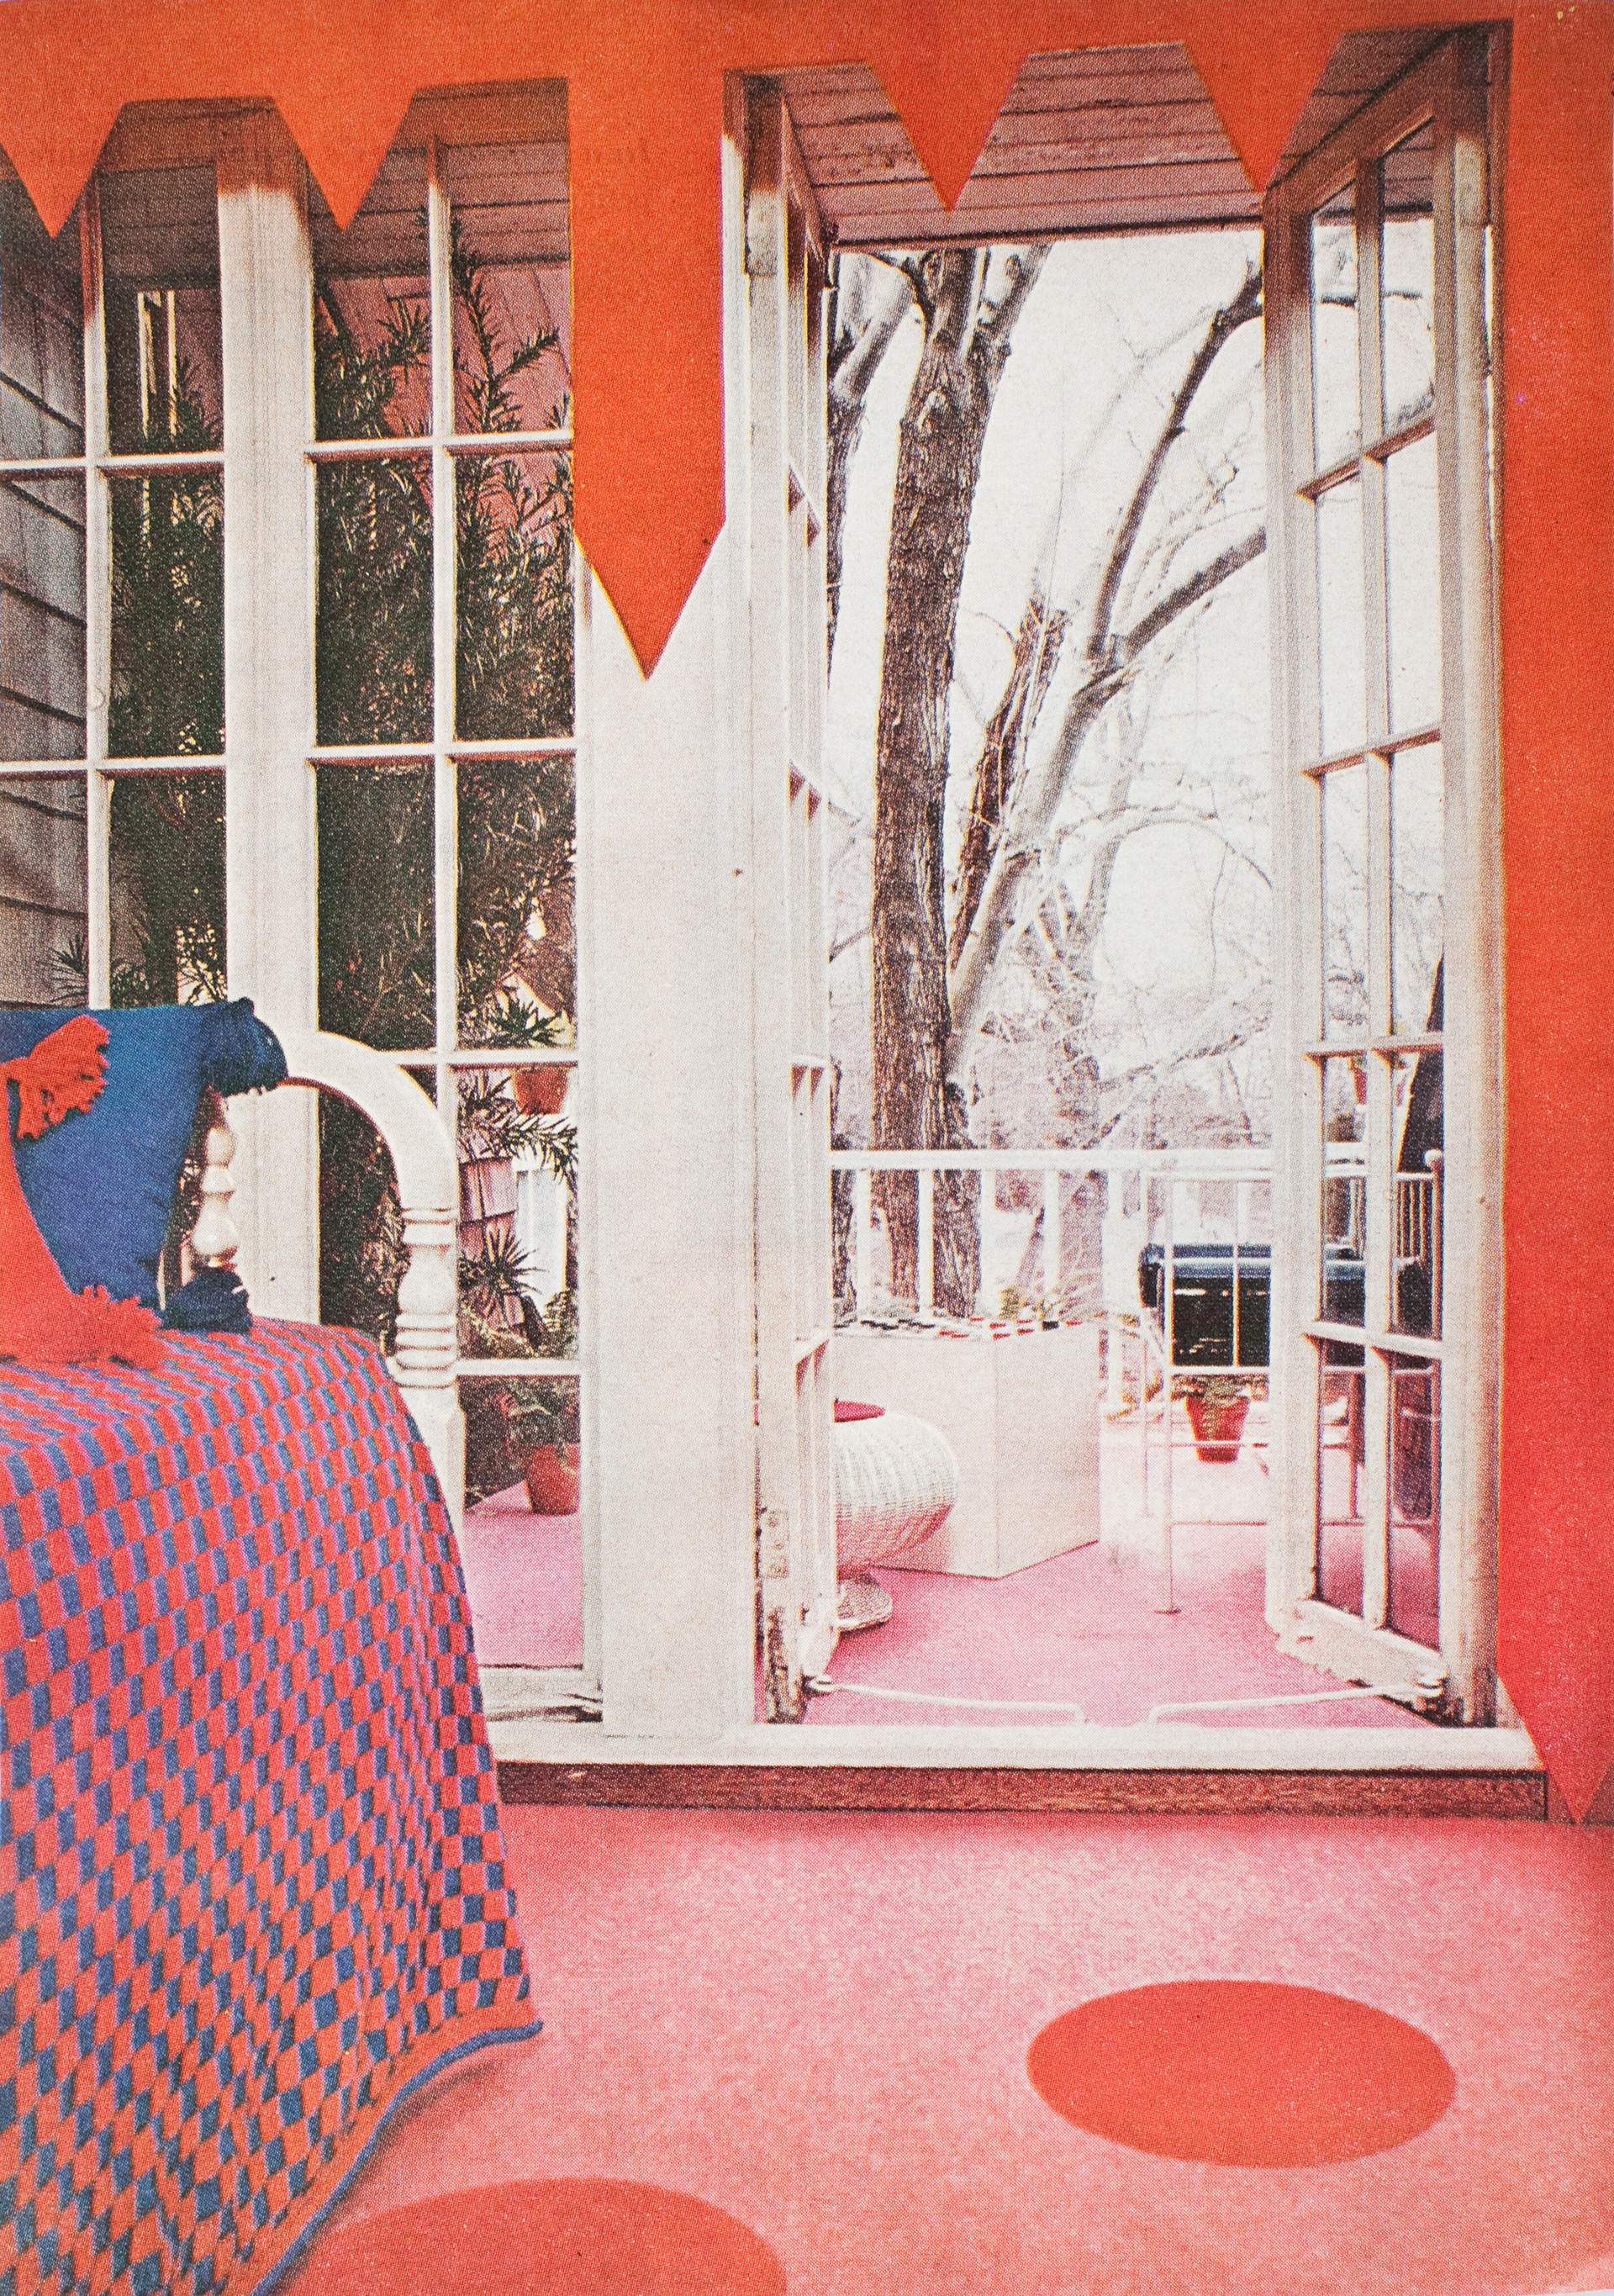 1970s pink carpet bedroom